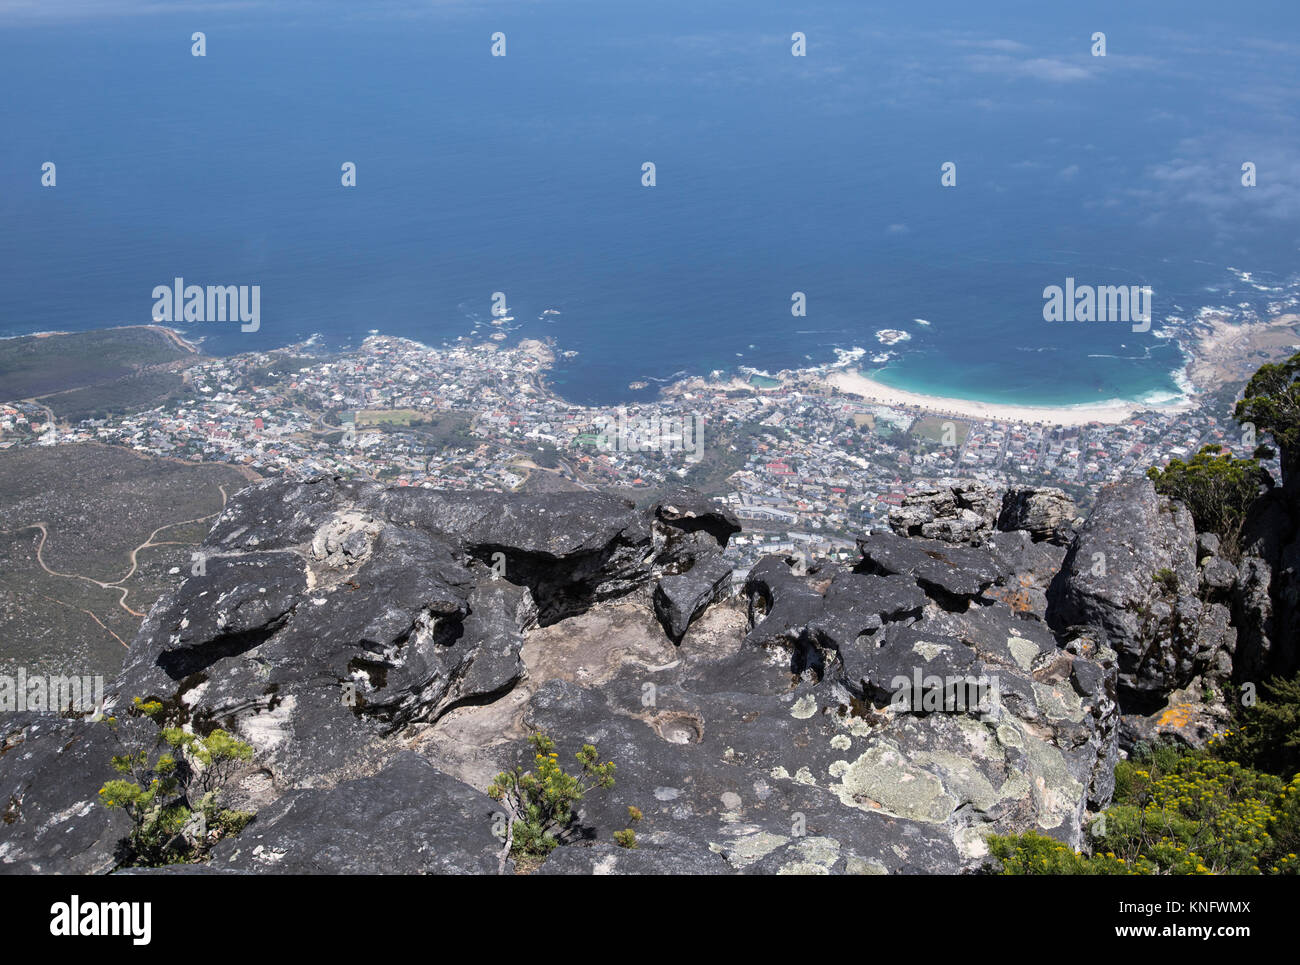 View from the top of Table Mountain looking down towards the city of Cape Town, South Africa - Stock Image